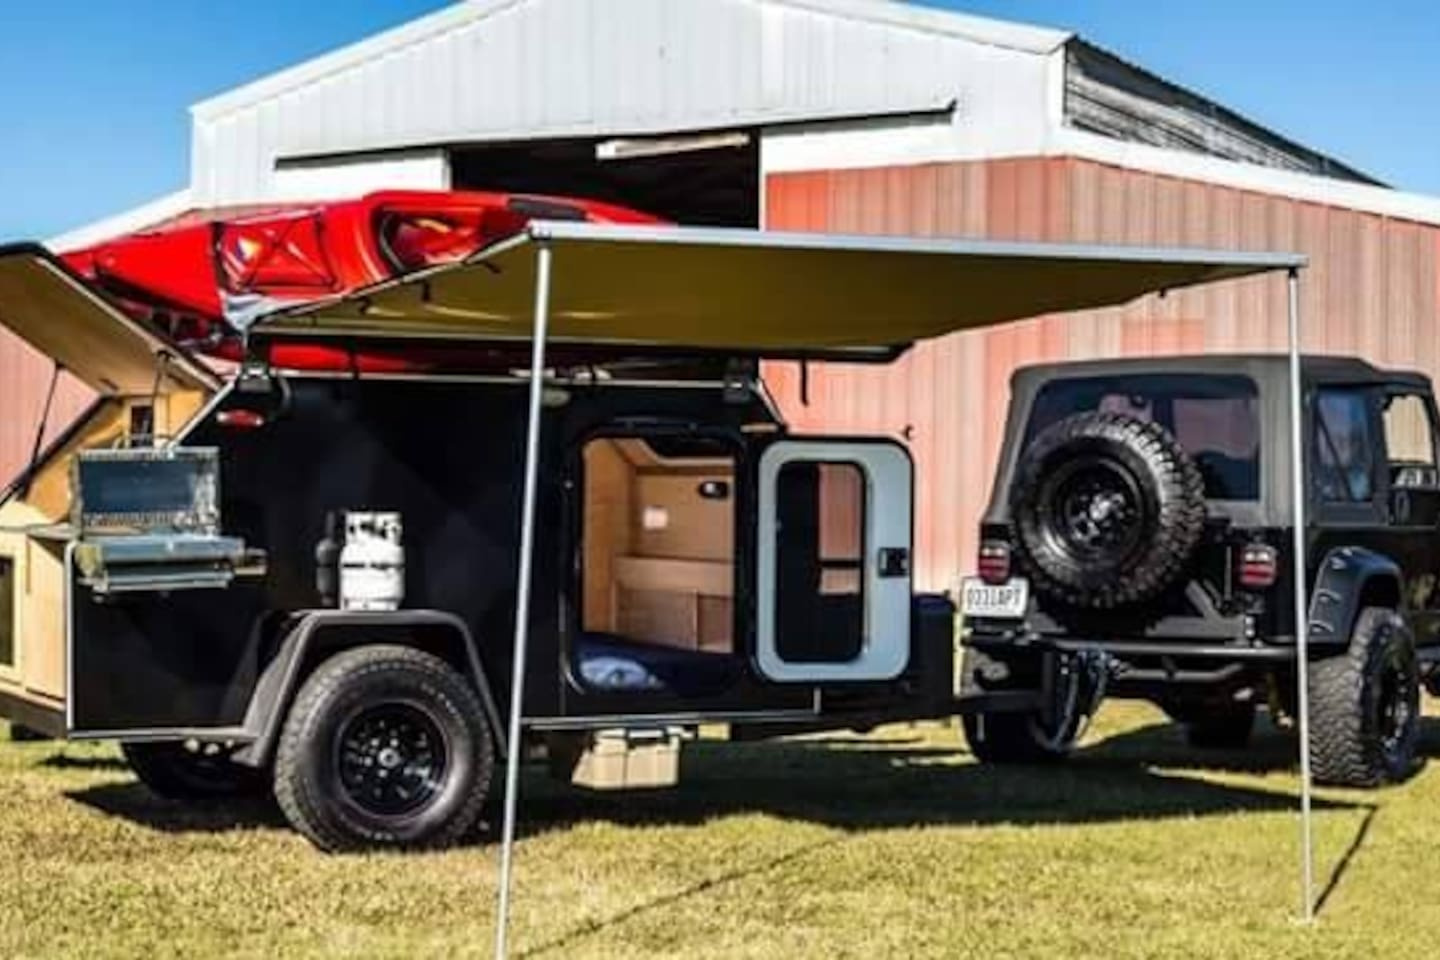 Fully self contained off-road teardrop trailer.  Robust electric system with 12v, 120v, solar panels, deep cycle batteries, power inverter, water system with 10 gallon tank, electric water pump, faucet, stainless steel sink.